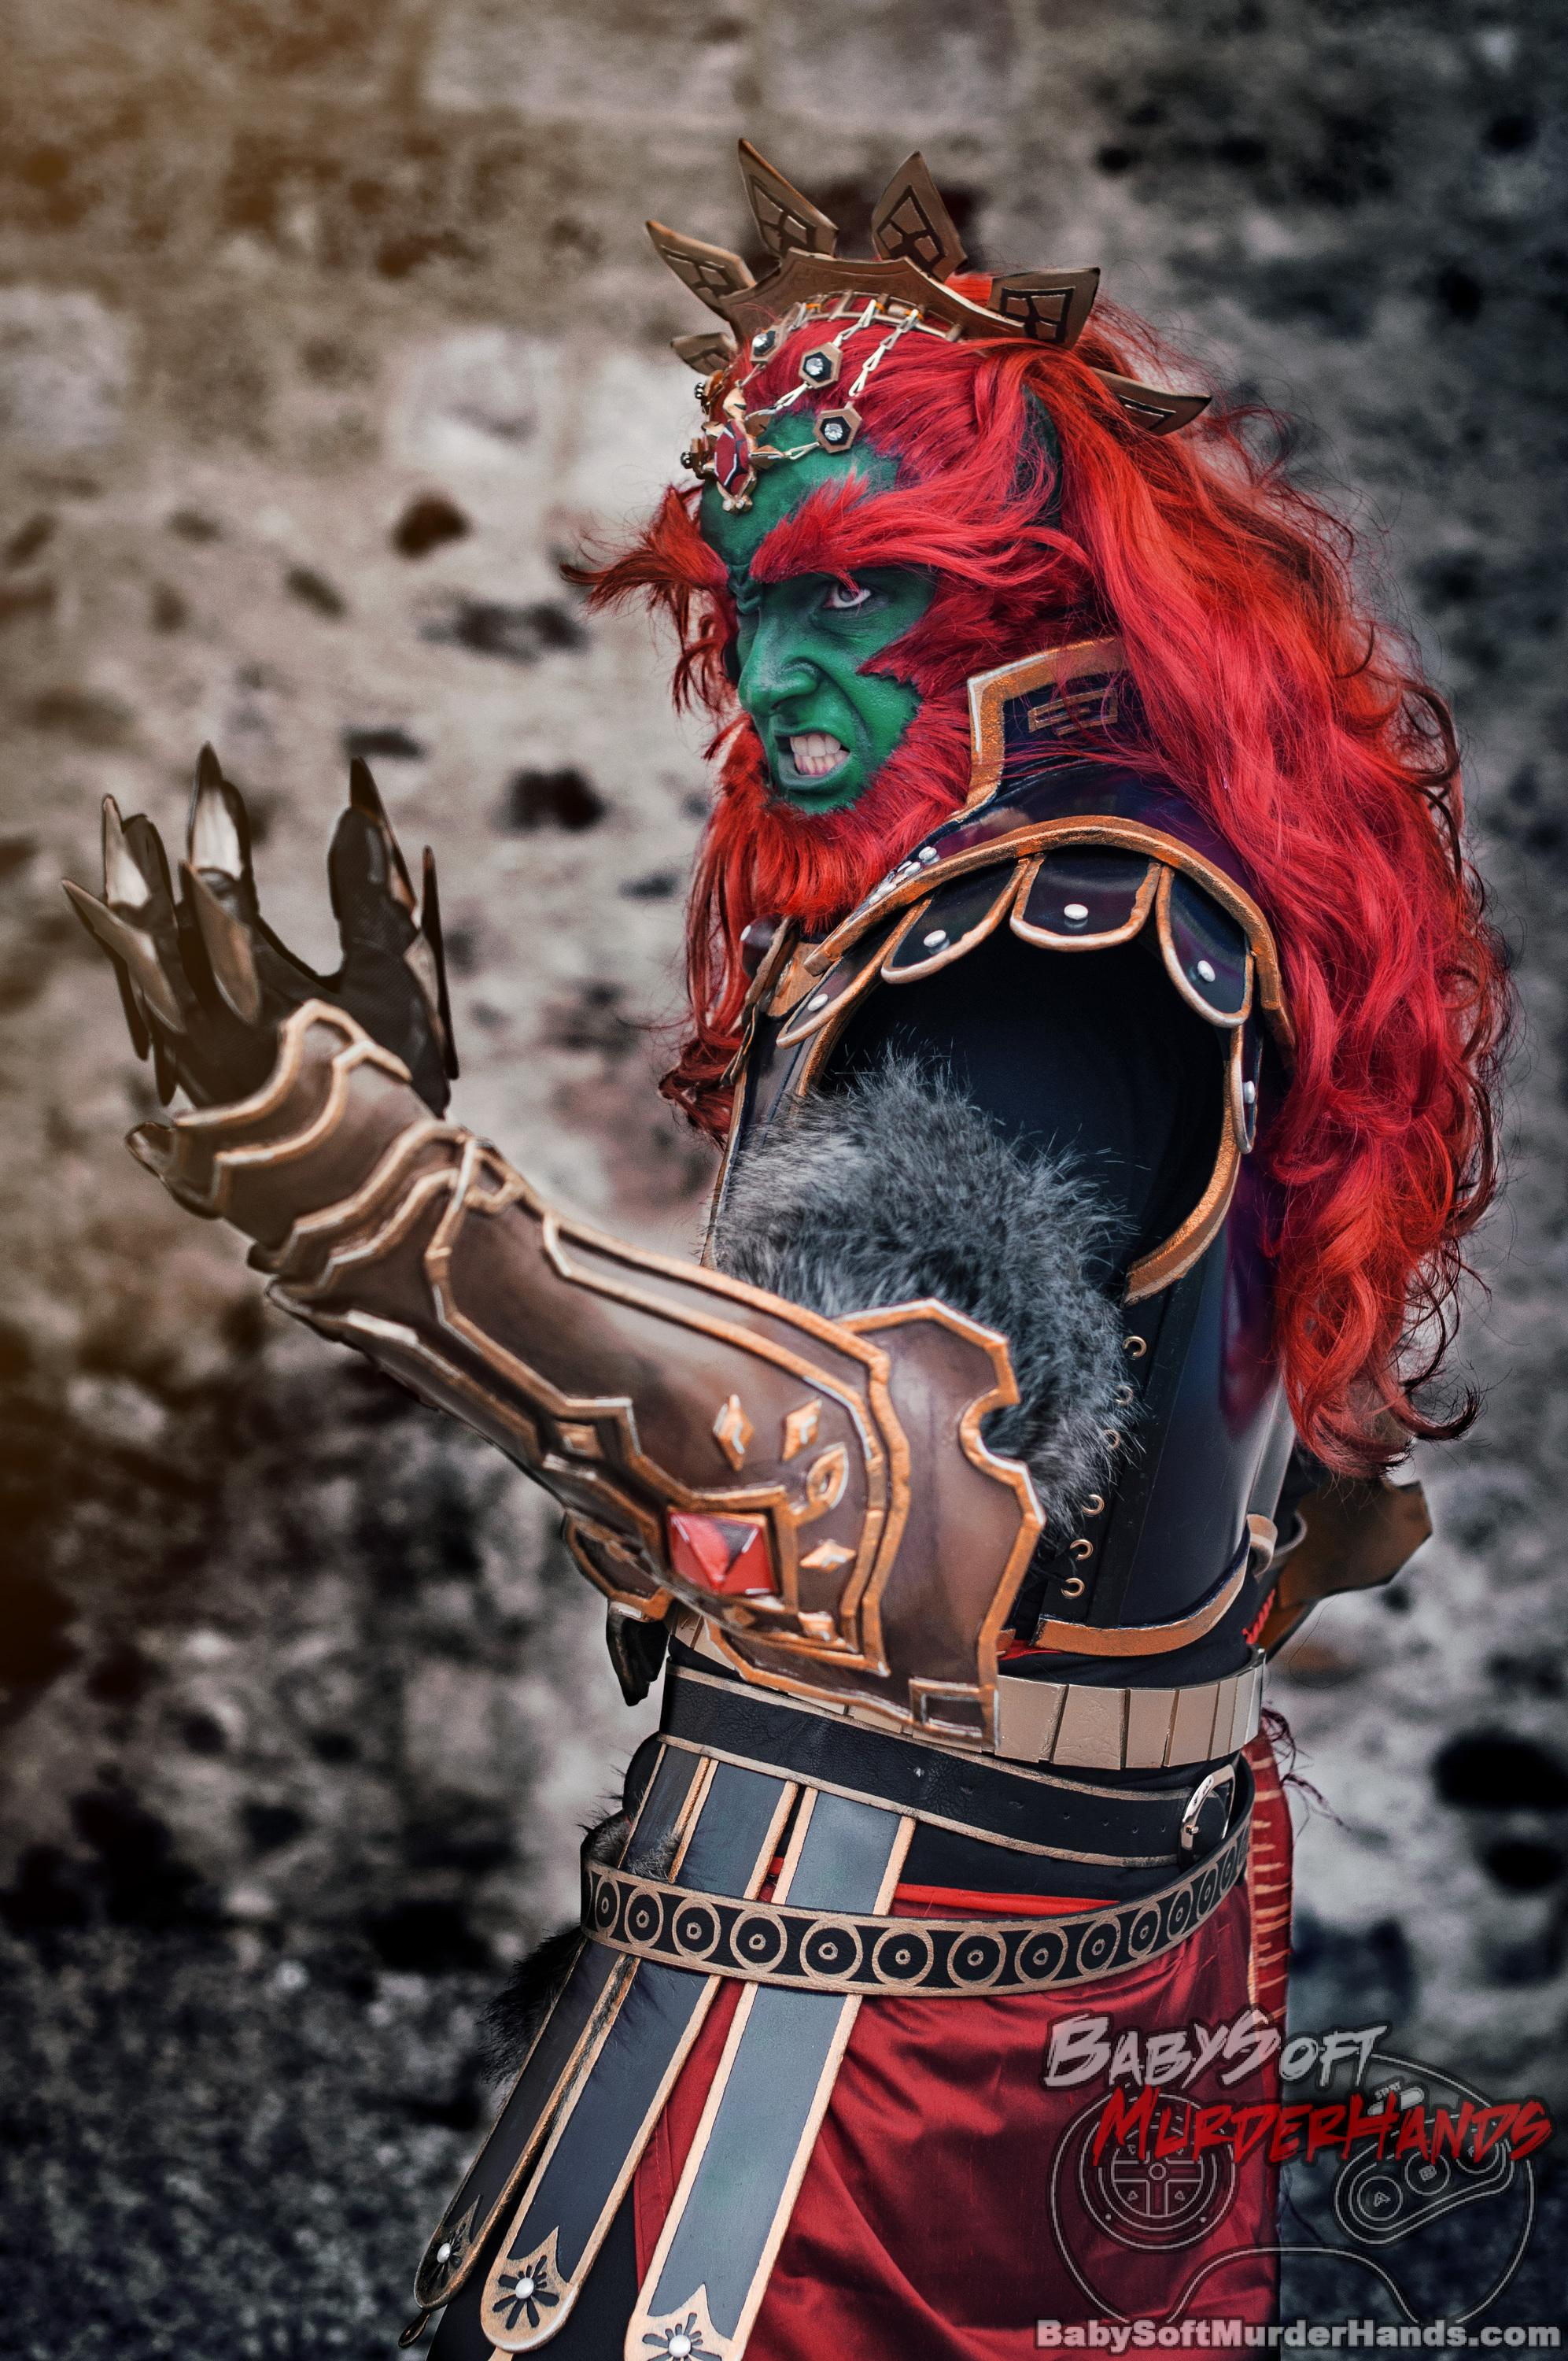 Nene Ycari ganondorf of HYRULE WARRIORS Cosplay